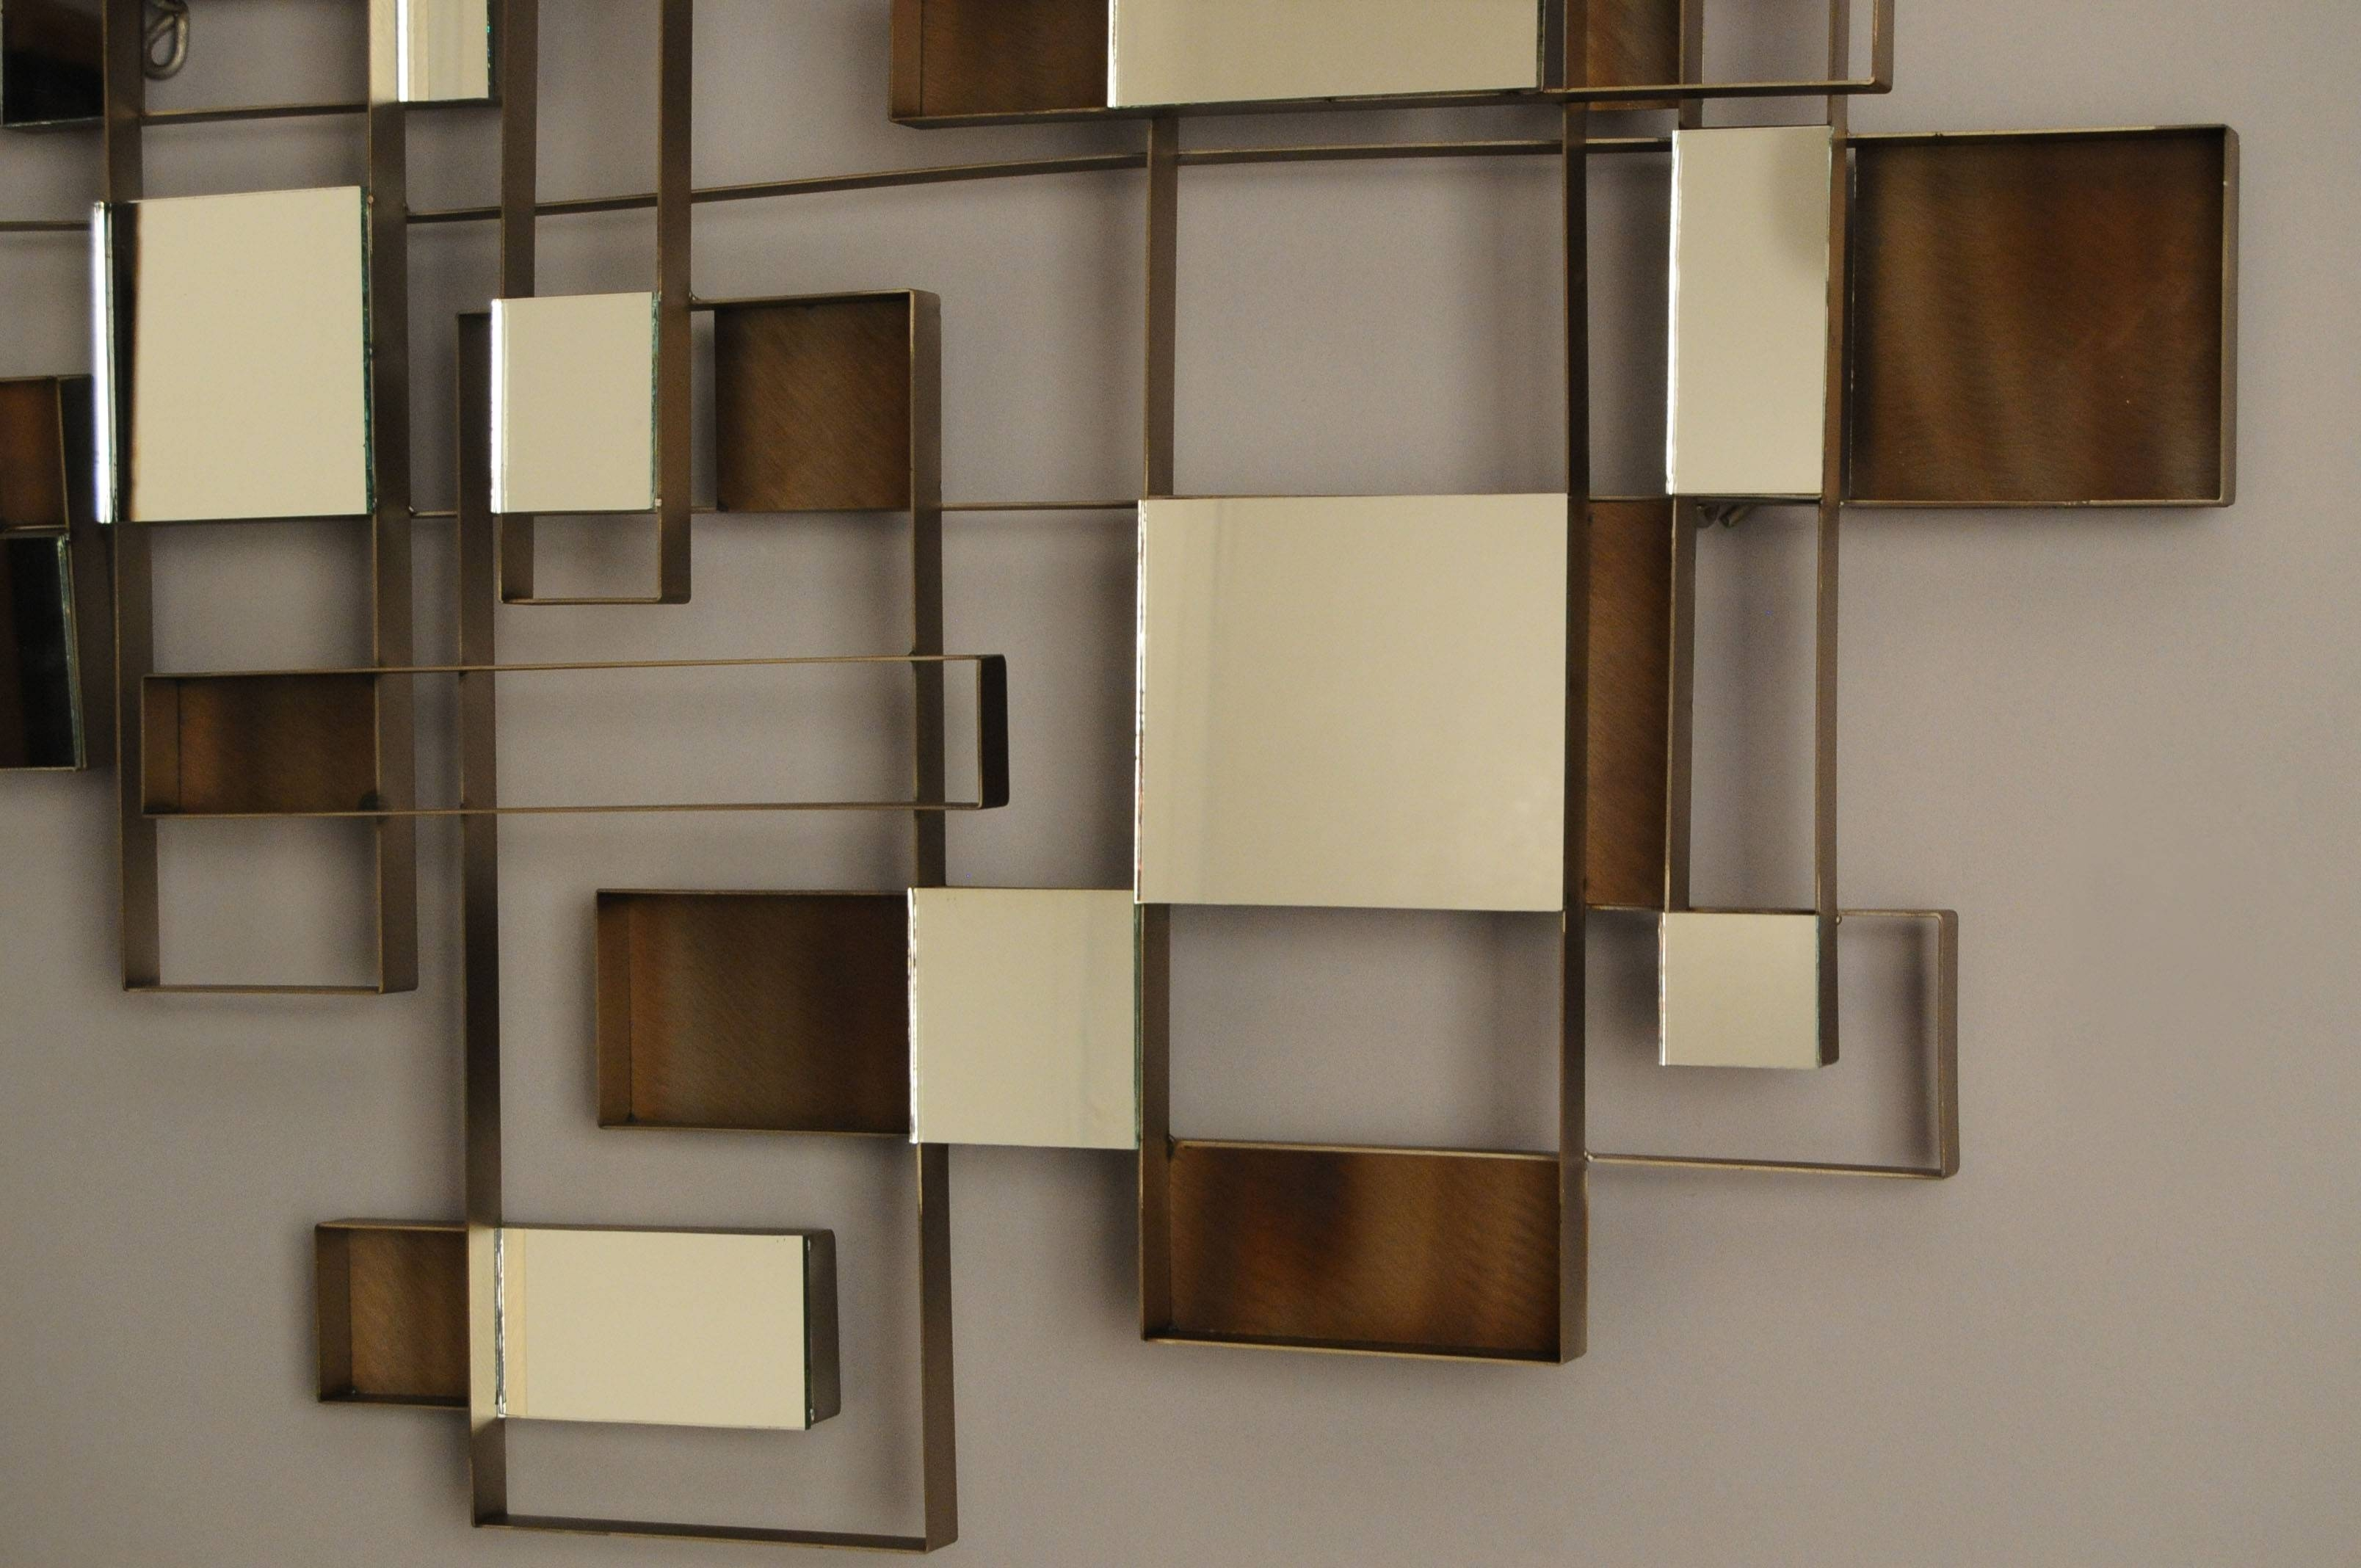 Wall Art Designs: Awesome Wall Art Mirror With Abstract Pattern In Most Up To Date Wall Art Mirrors Contemporary (View 16 of 20)